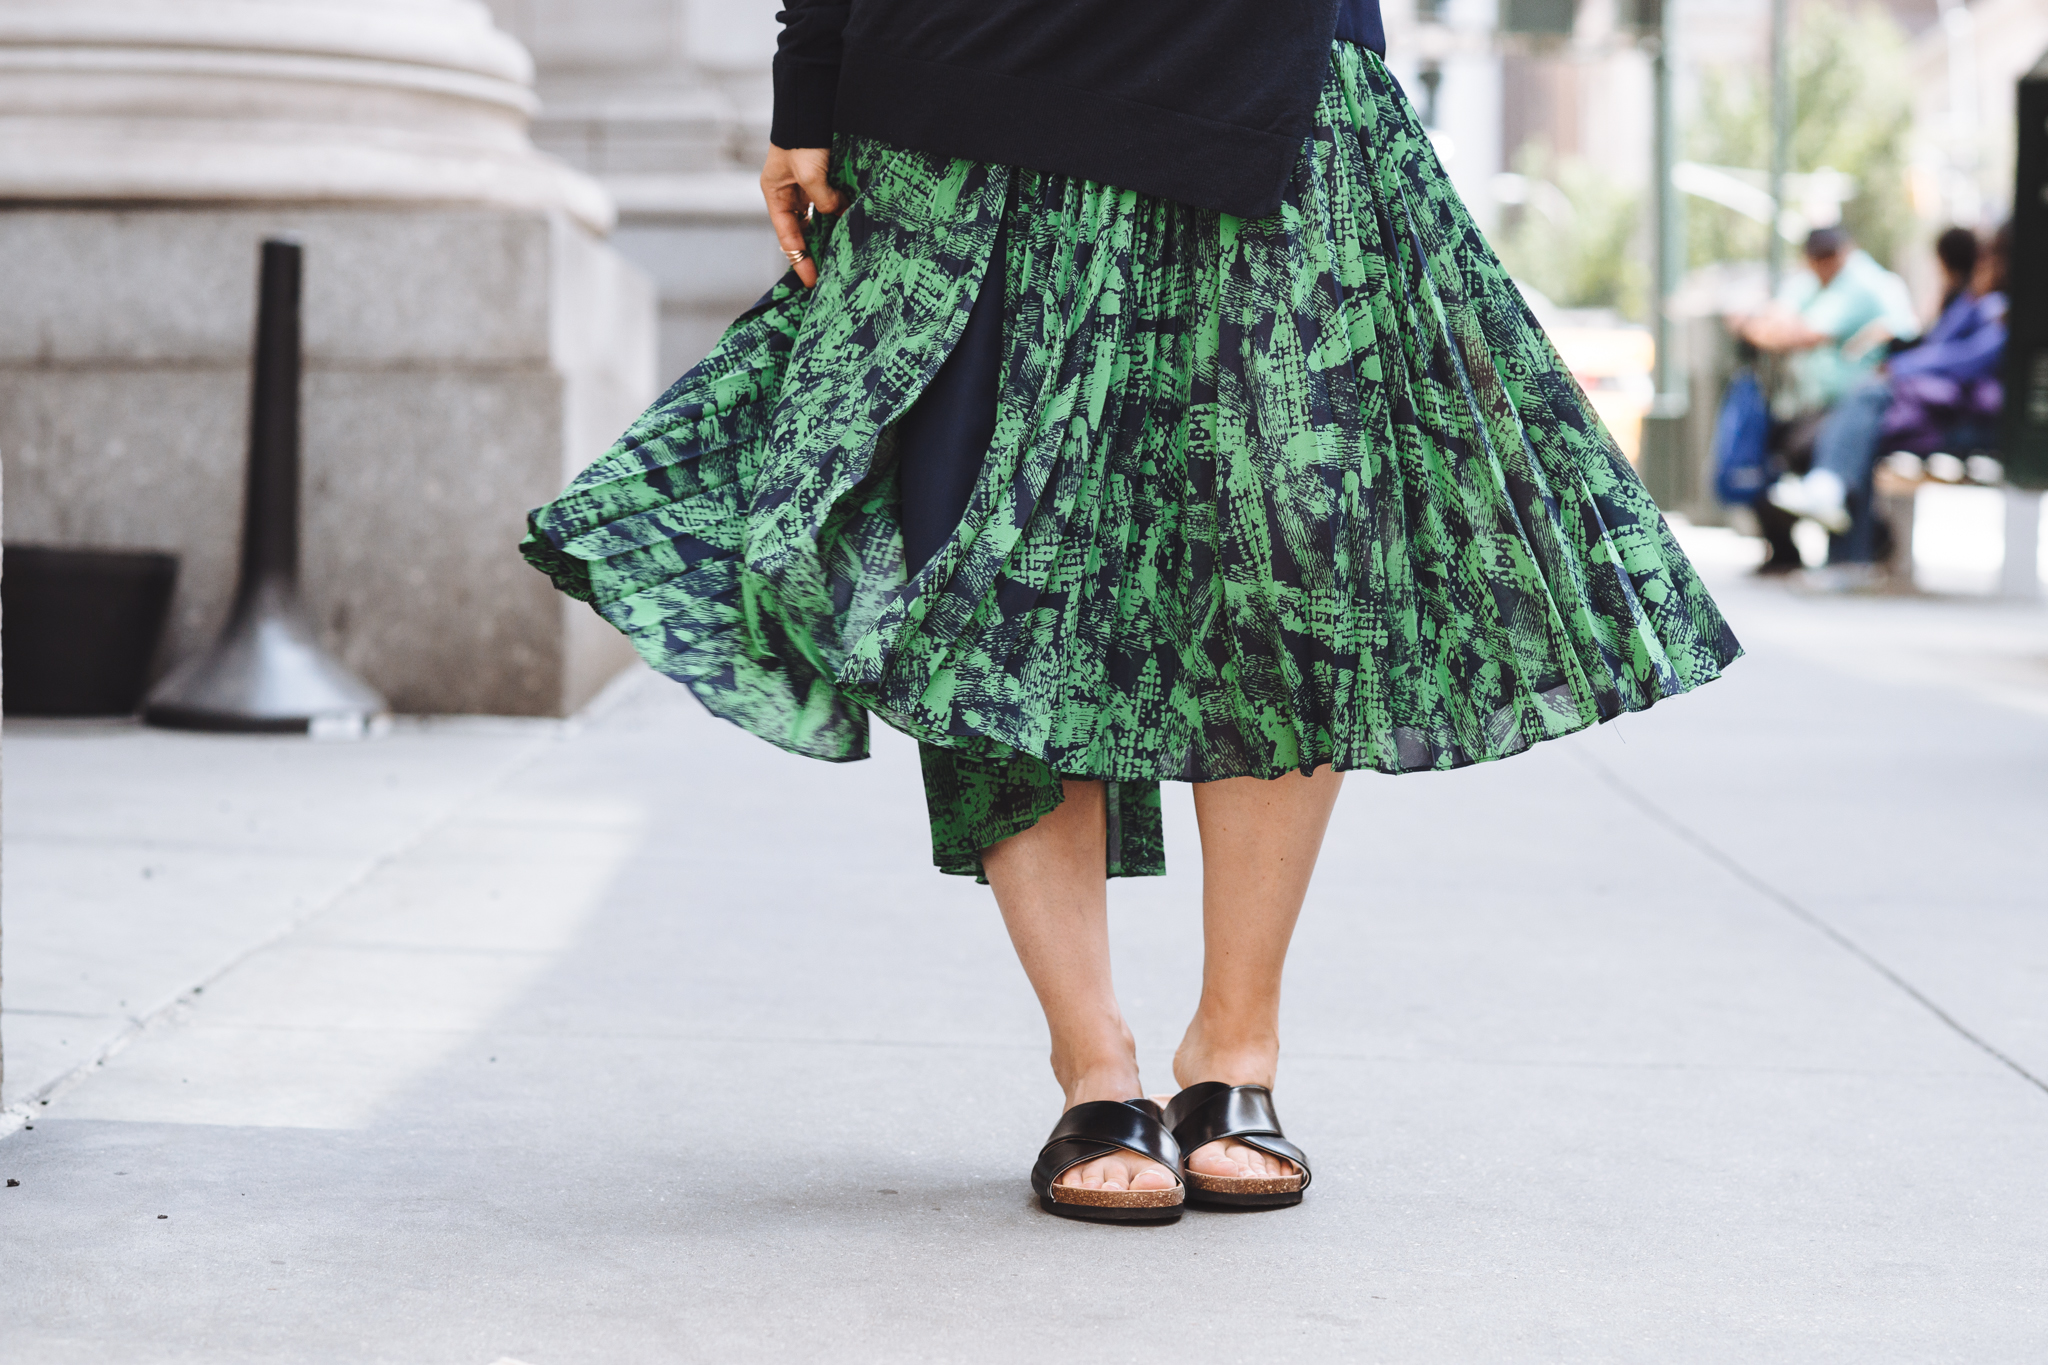 Pleated skirt & slides | THEFASHIONGUITAR